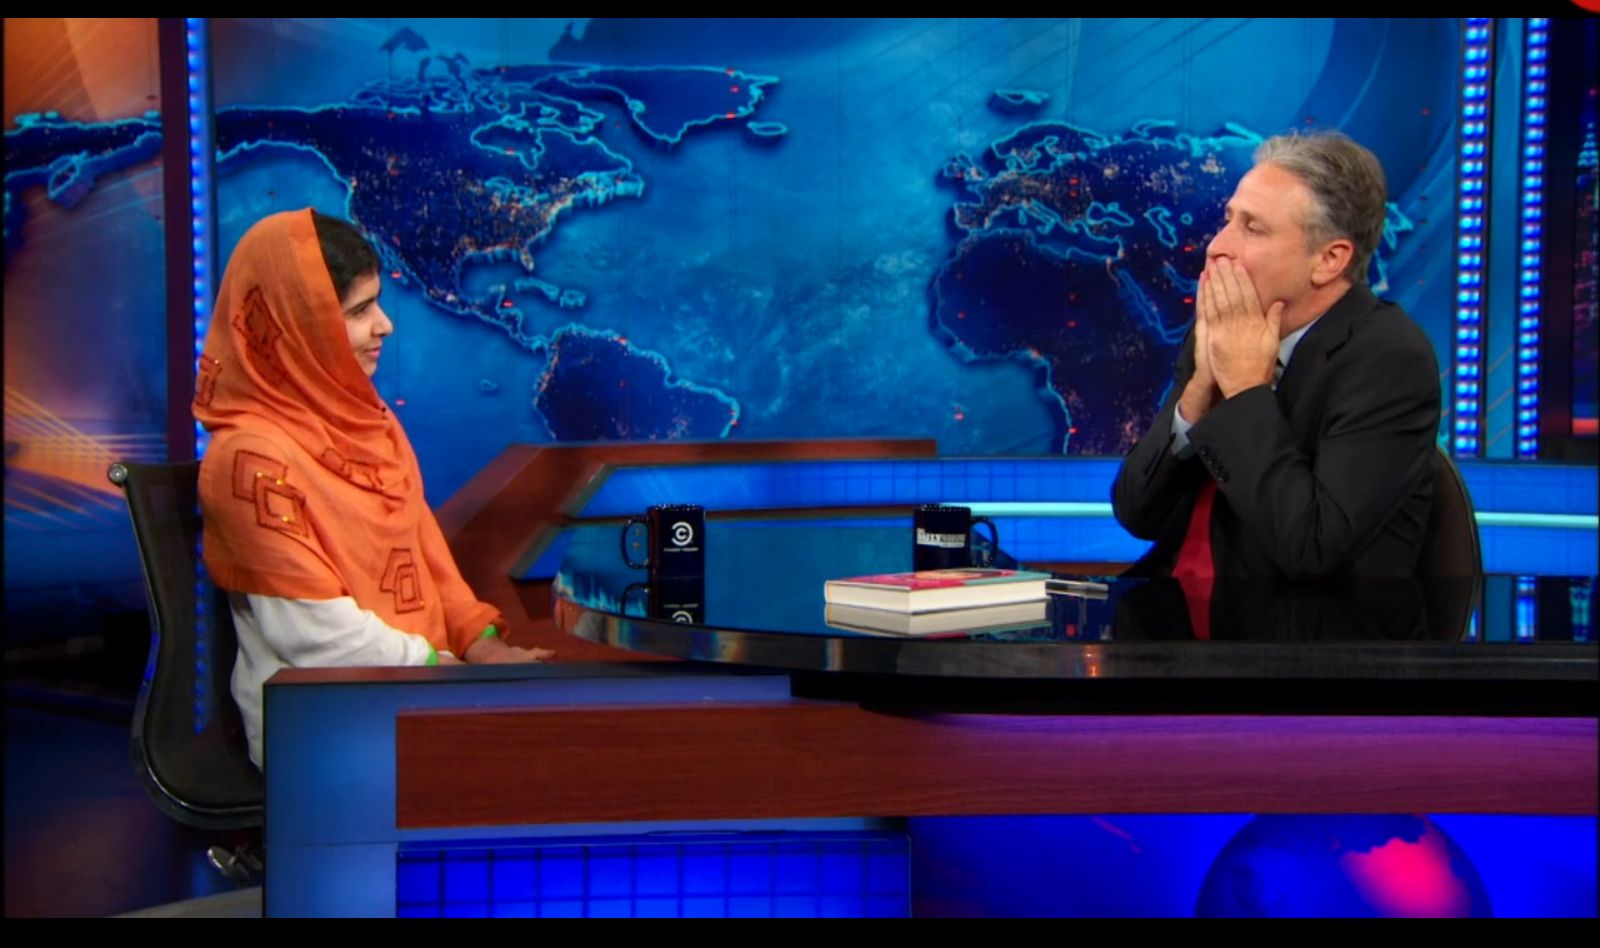 With Jon Stewart stepping down as host of The Daily Show